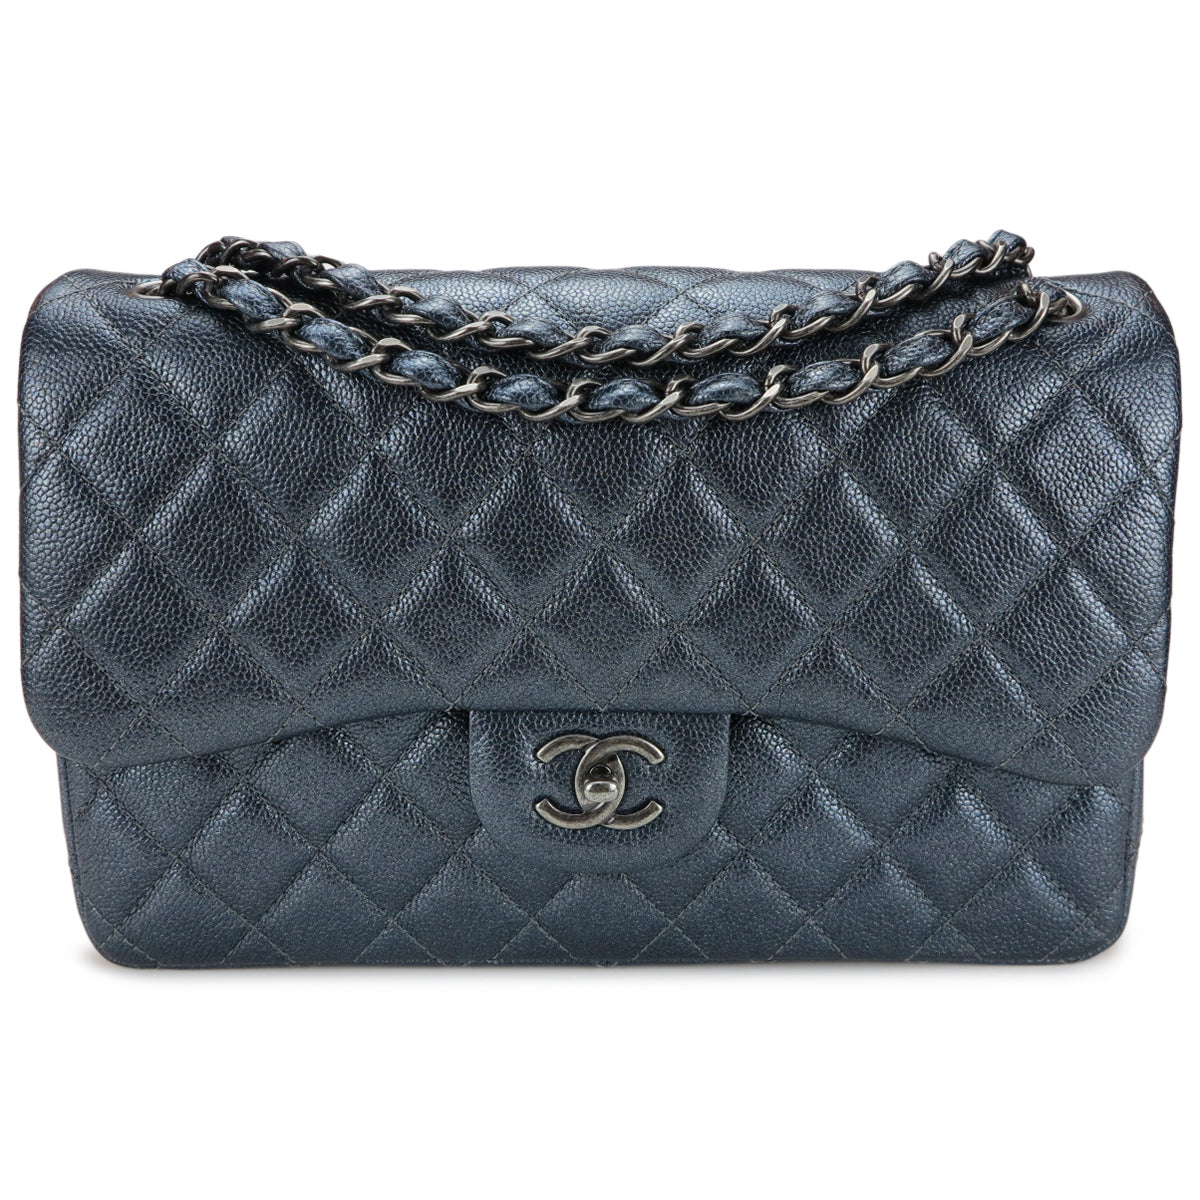 fc4e1fd0bc68 CHANEL Jumbo Classic Double Flap Bag in Pearly Charcoal Caviar -  Dearluxe.com ...